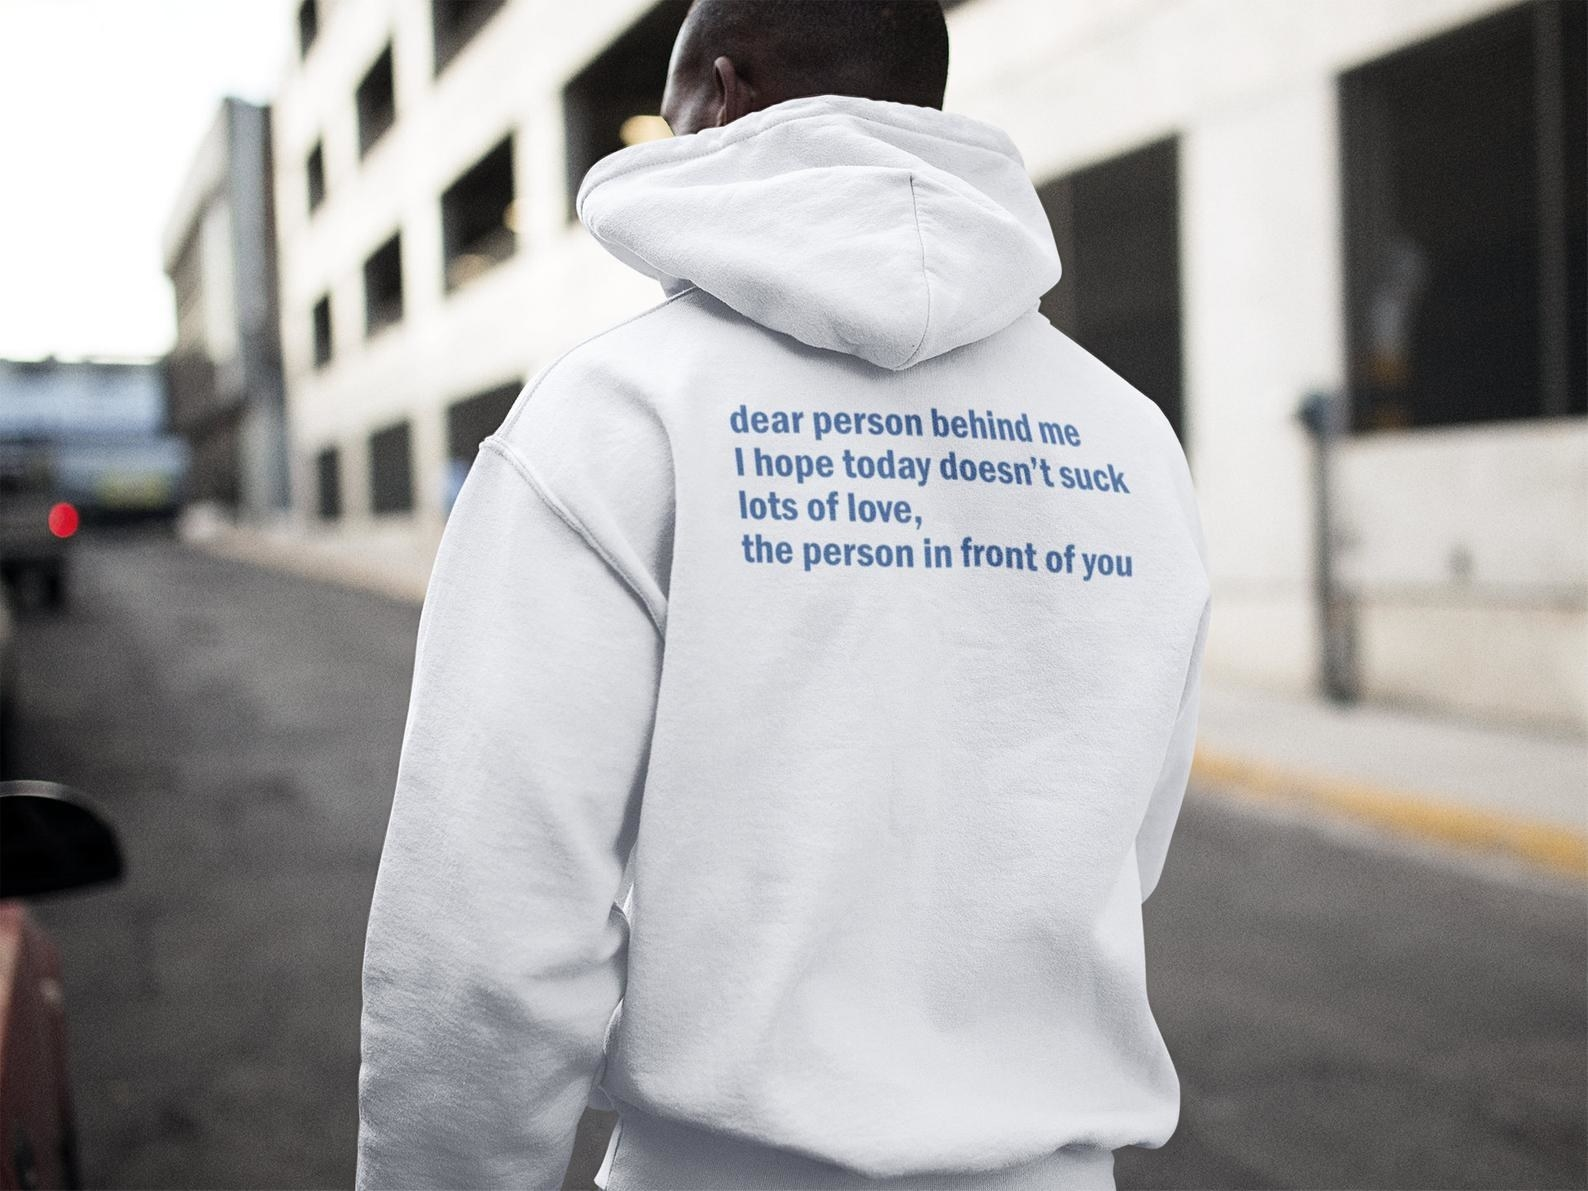 the positive hoodie in white that reads dear person behind me I hope today doesn't suck lots of love the person in front of you